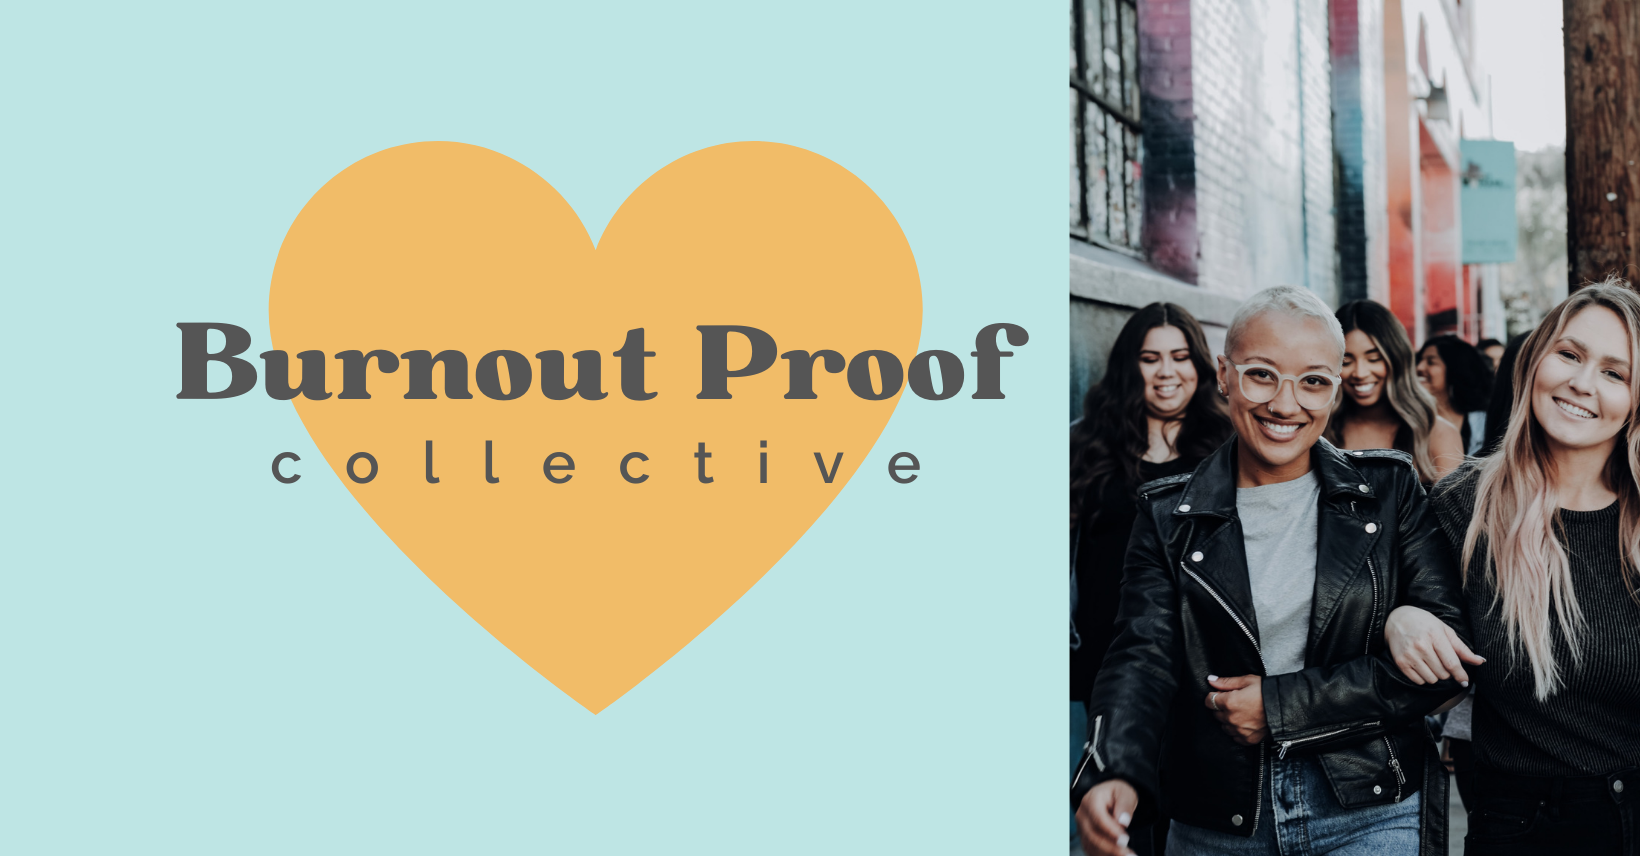 blue background, yellow heart, text reads: Burnout Proof Collective. Image: 2 people with arms linked, smiling at the camera, the one on the left has brown skin, short bleached hair, glasses, and a black leather biker jacket, the one on the right is white with long blonde hair walking in front of a group of smiling people of varying skin tones. Tag: what others think of you